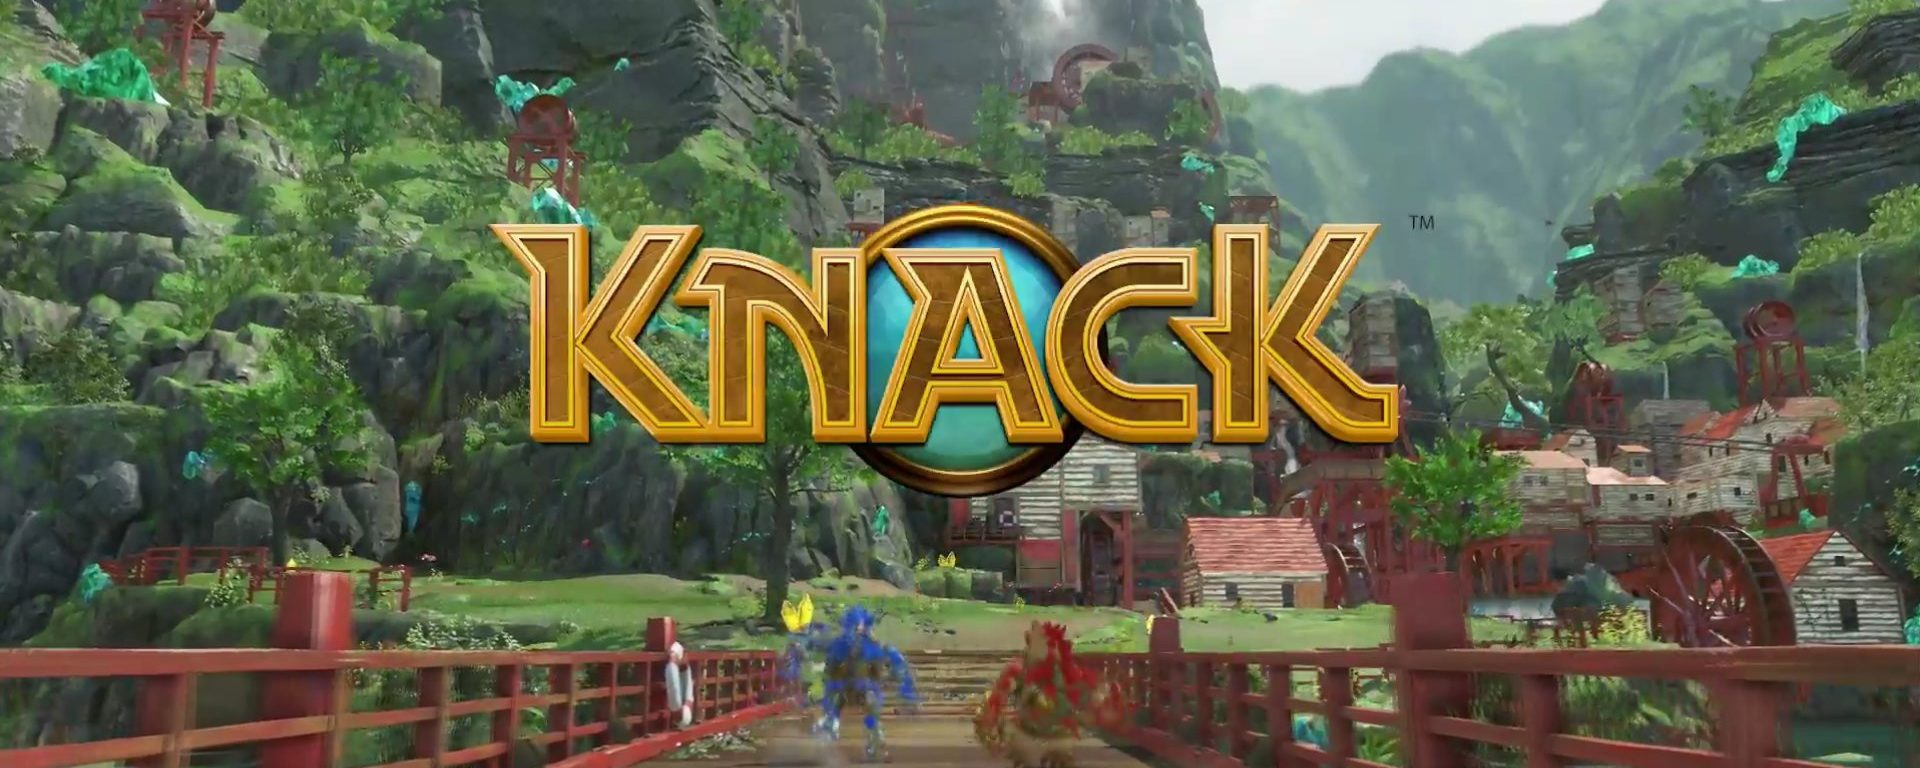 PSX 2016 – Knack 2 Announced For The PS4